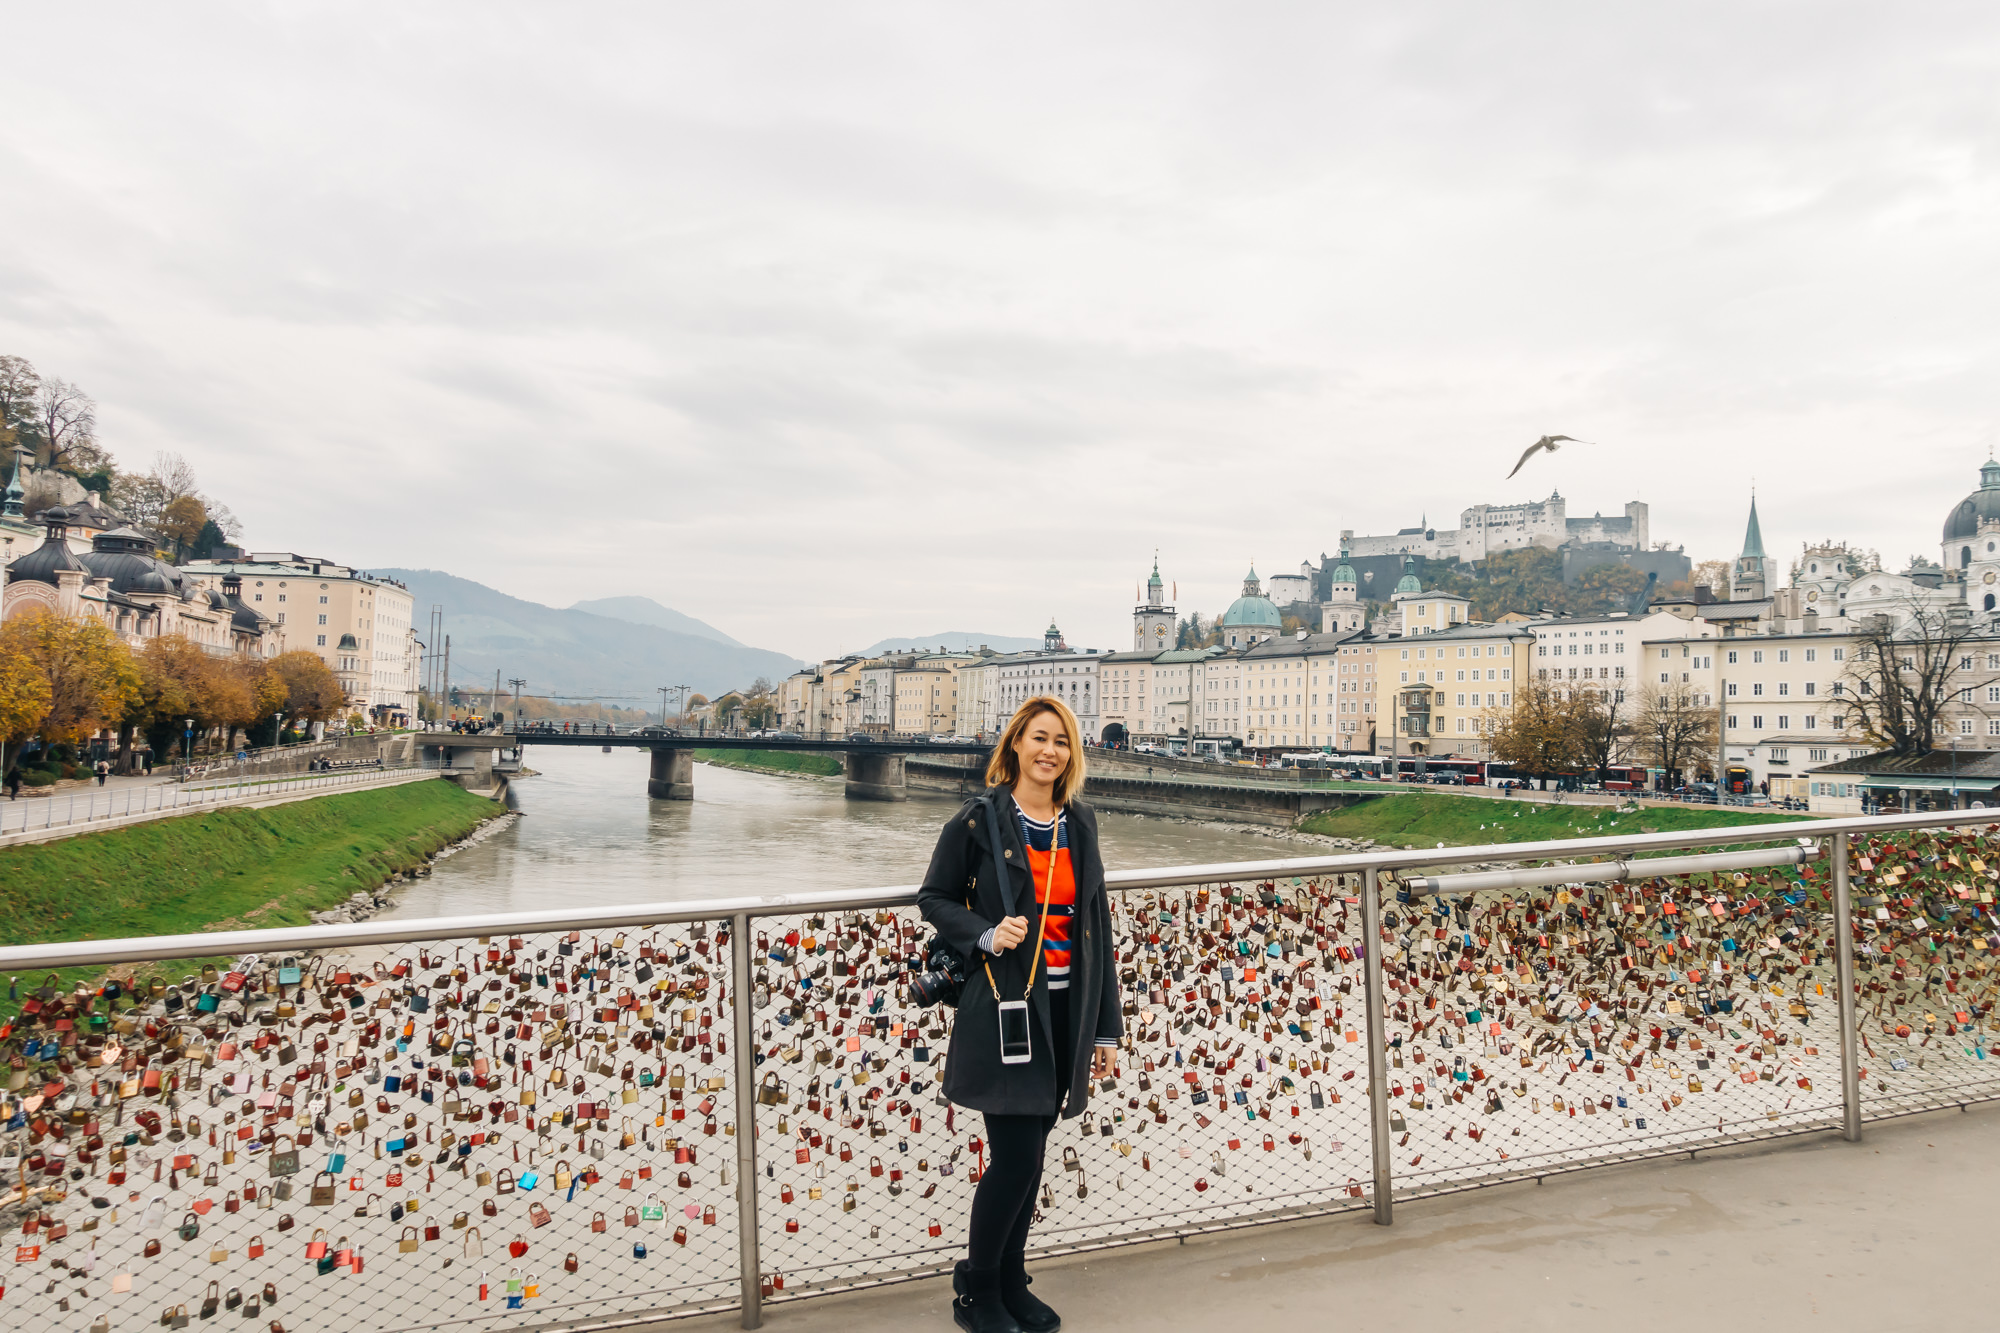 Bridge of love locks crossing over to the other side of Salzburg